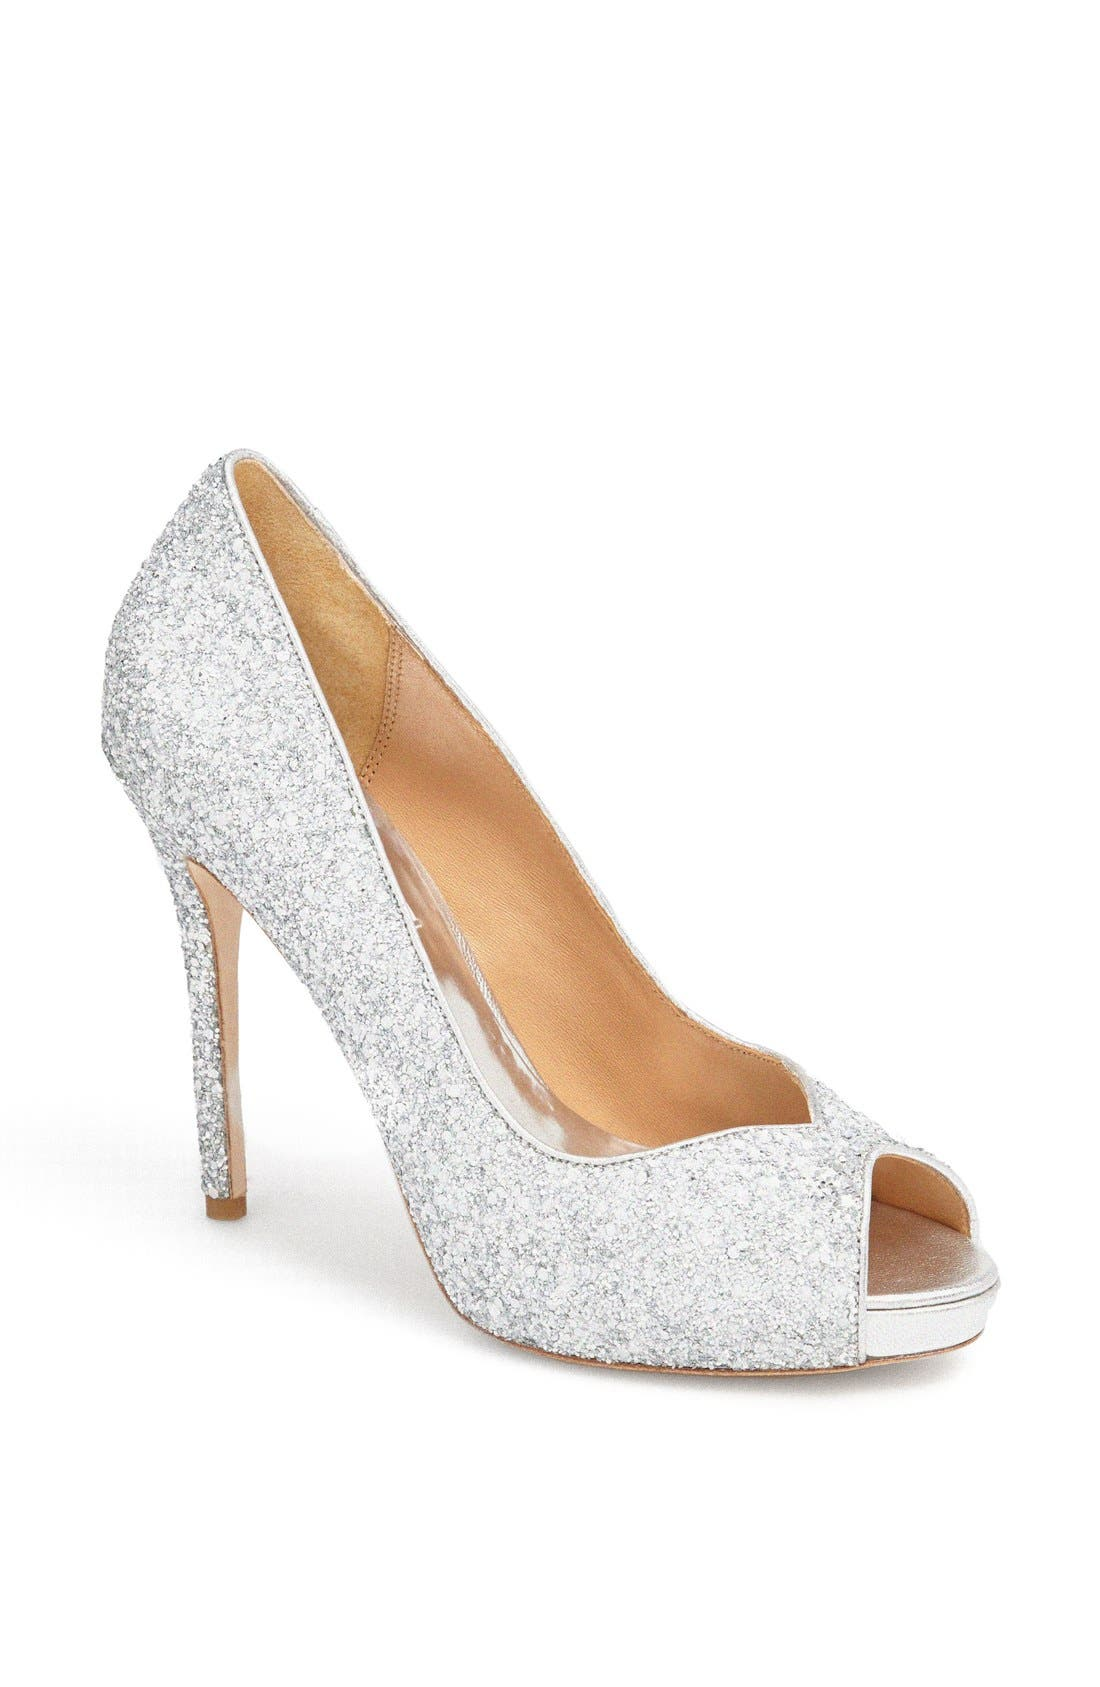 Main Image - Badgley Mischka 'Kassidy' Glitter Pump